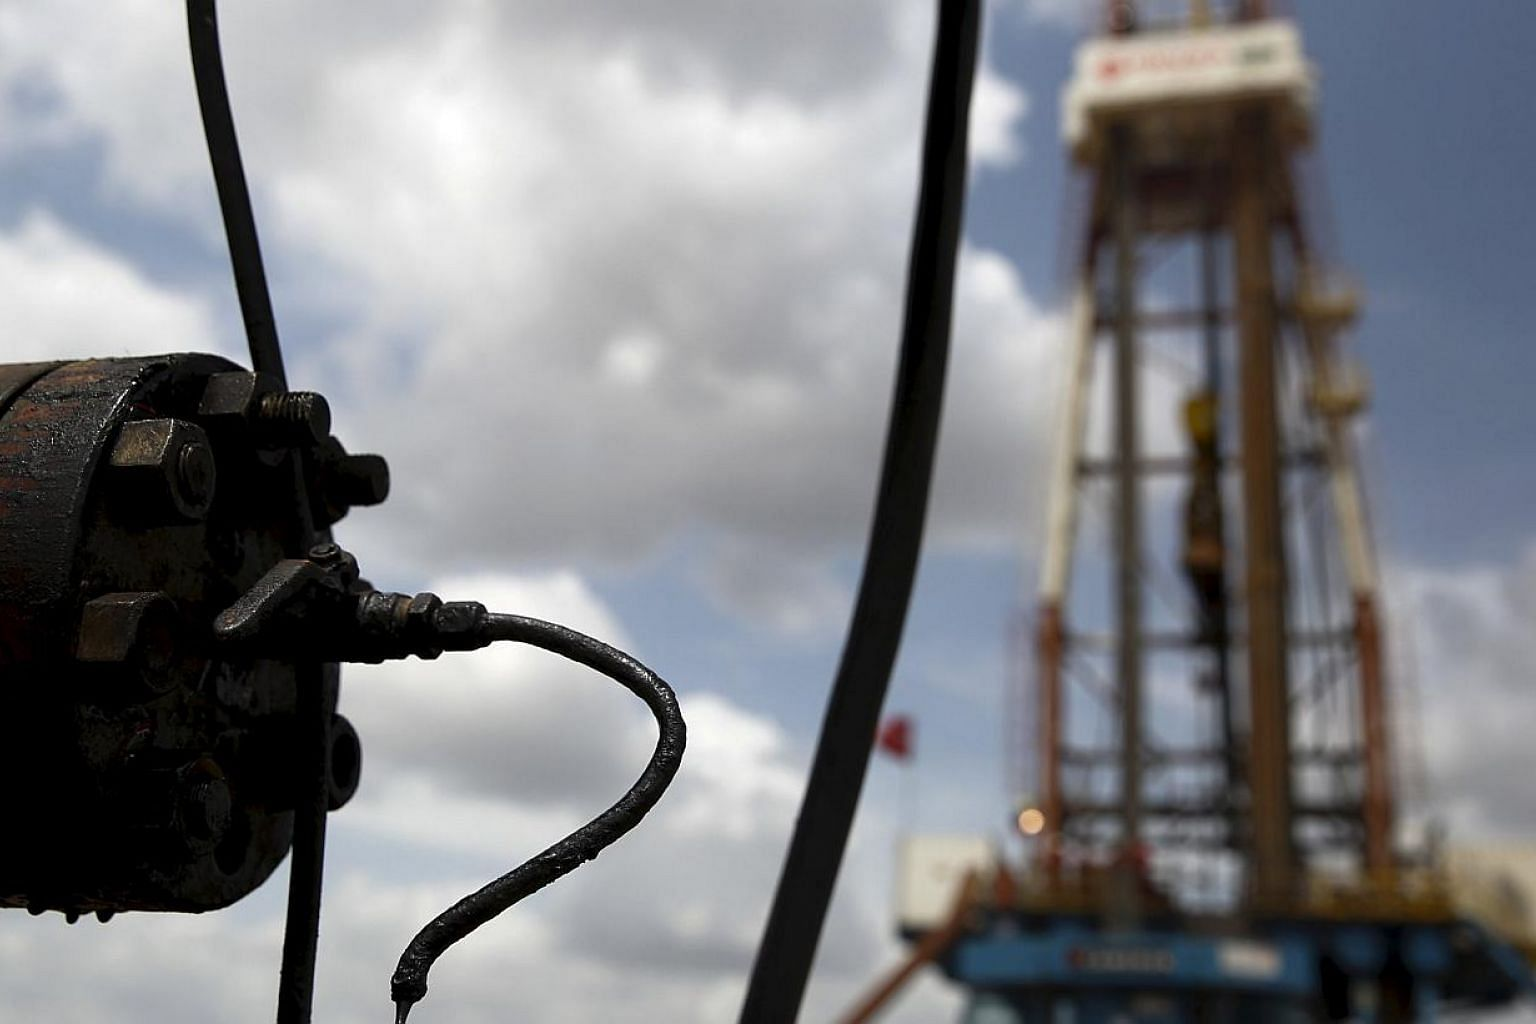 Crude oil drips from a valve at an oil well operated in Venezuela. Oil ministers from Iraq, Venezuela and Angola said in Vienna this week that a price of US$75 or US$80 a barrel could be just fine. -- PHOTO: REUTERS